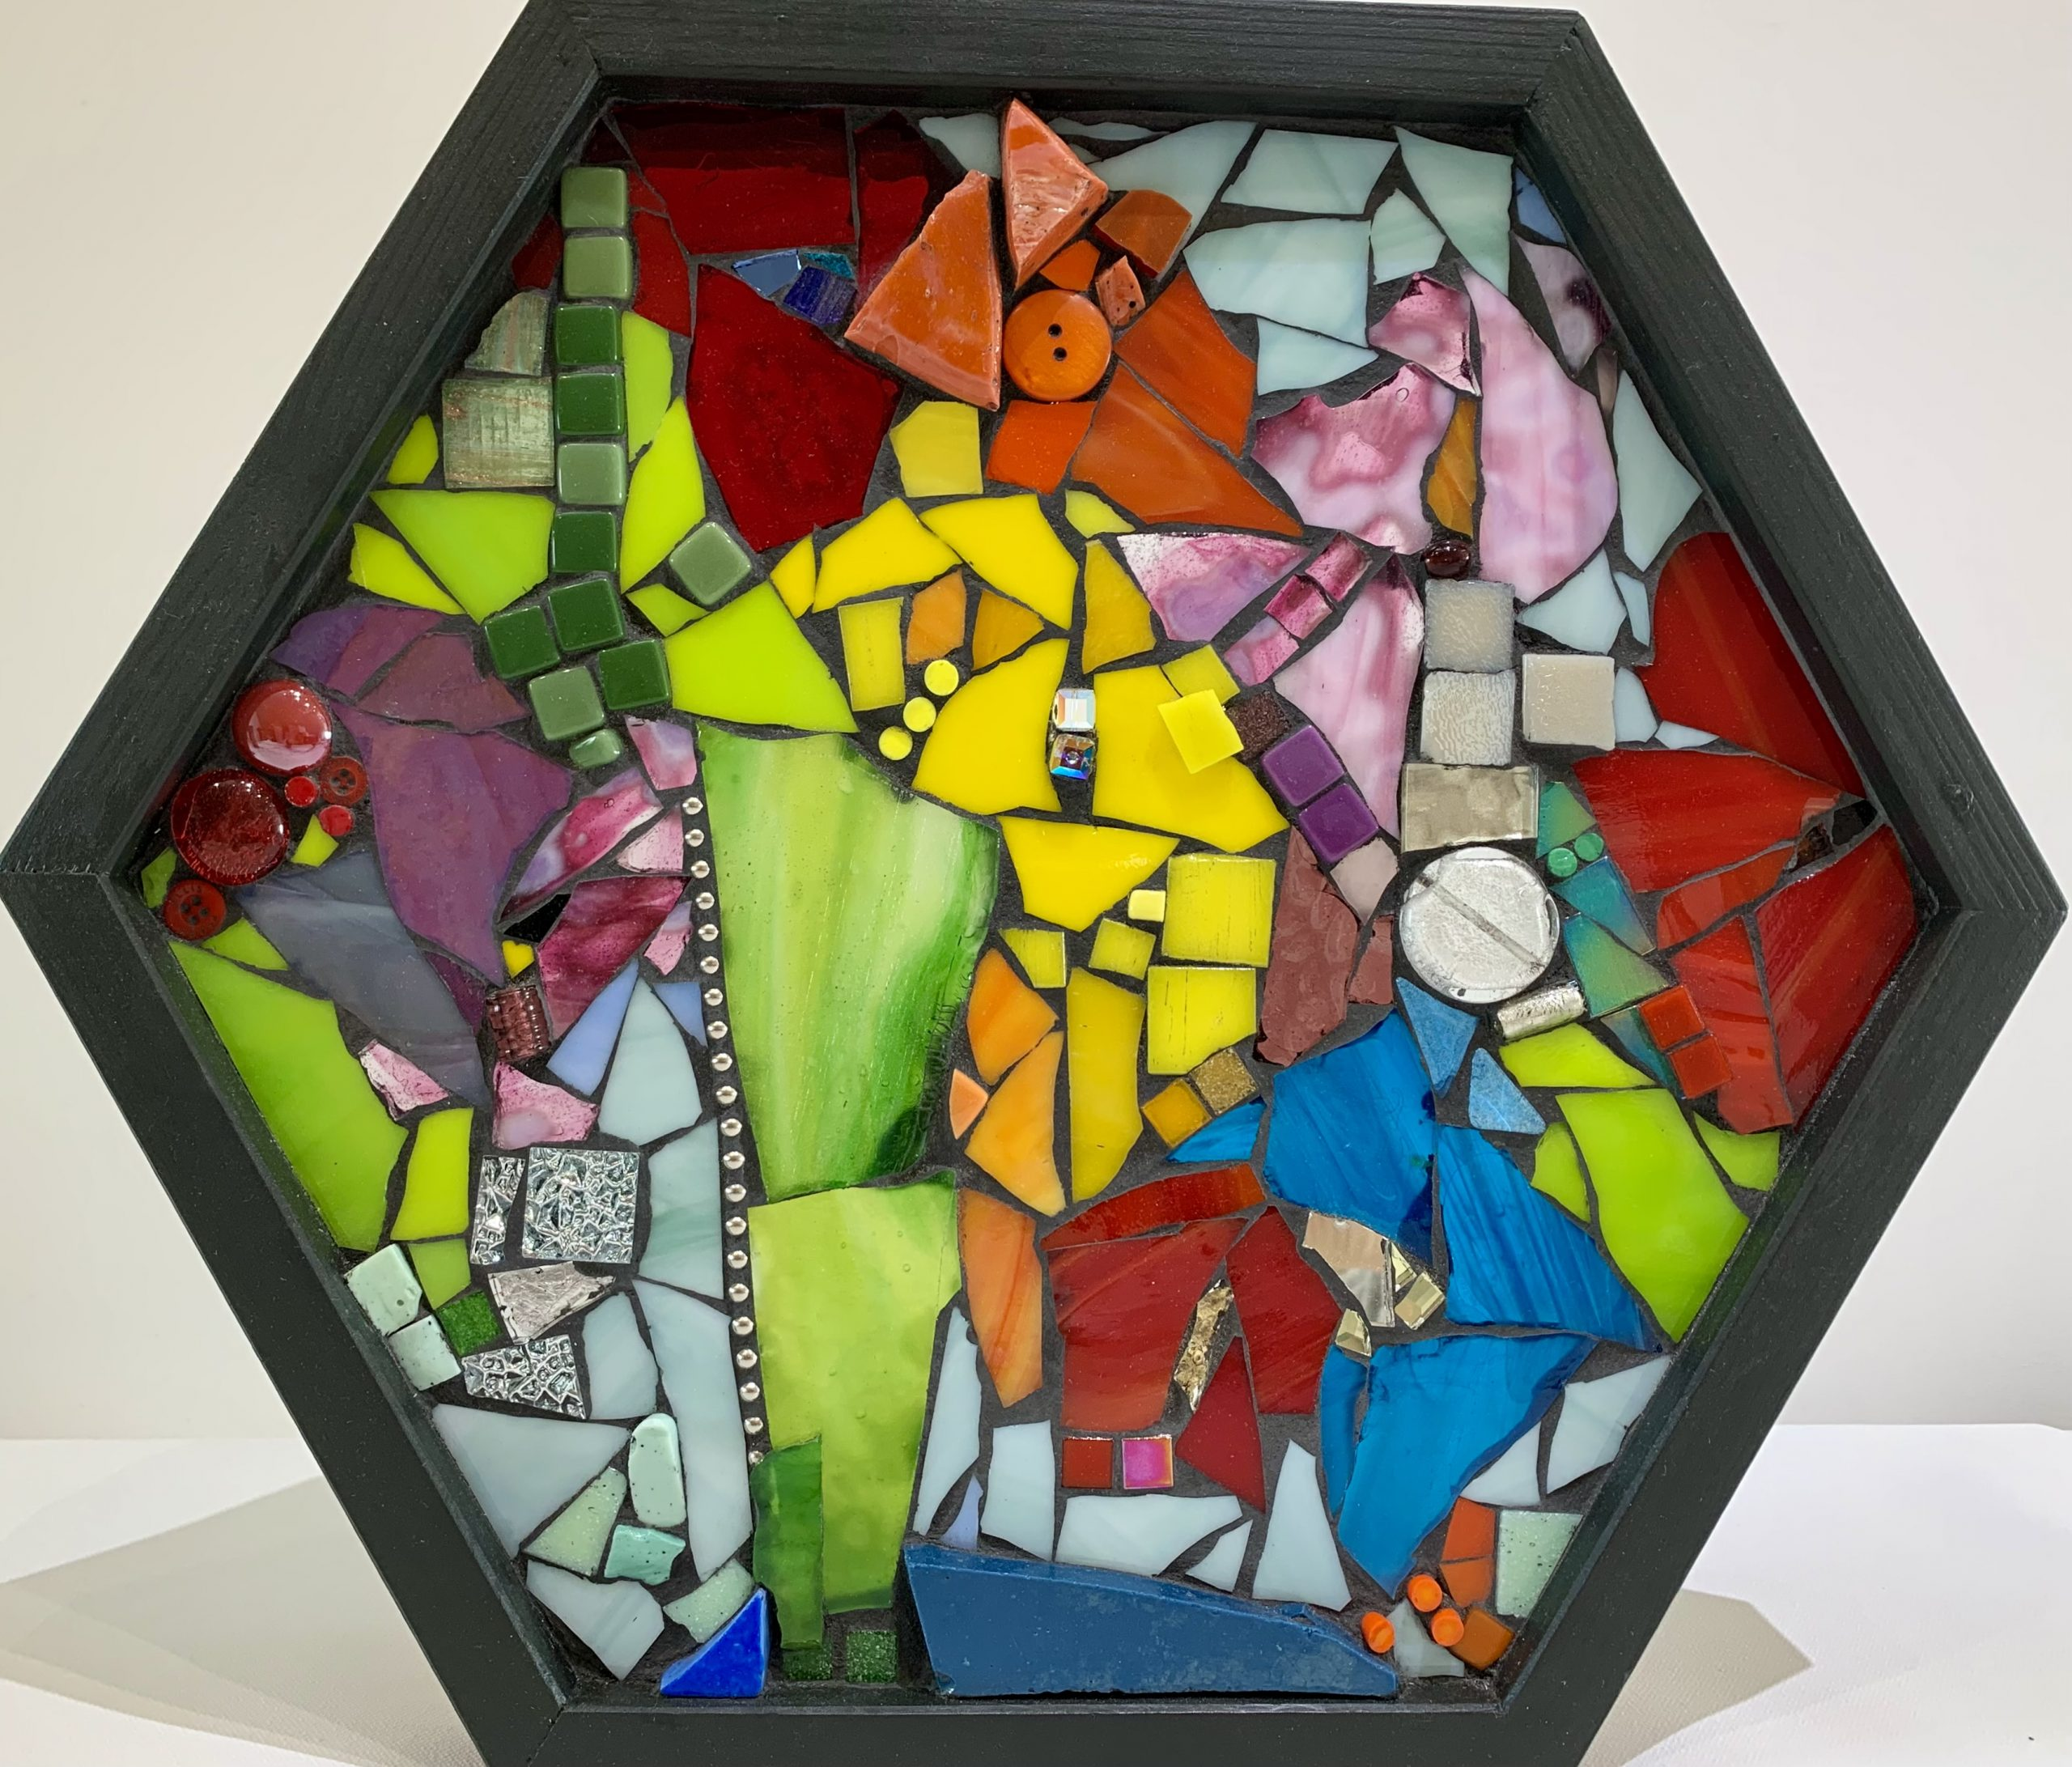 Whatever Makes You Happy, stained glass mosaic by Kimberly Kiel | Effusion Art Gallery + Cast Glass Studio, Invermere BC